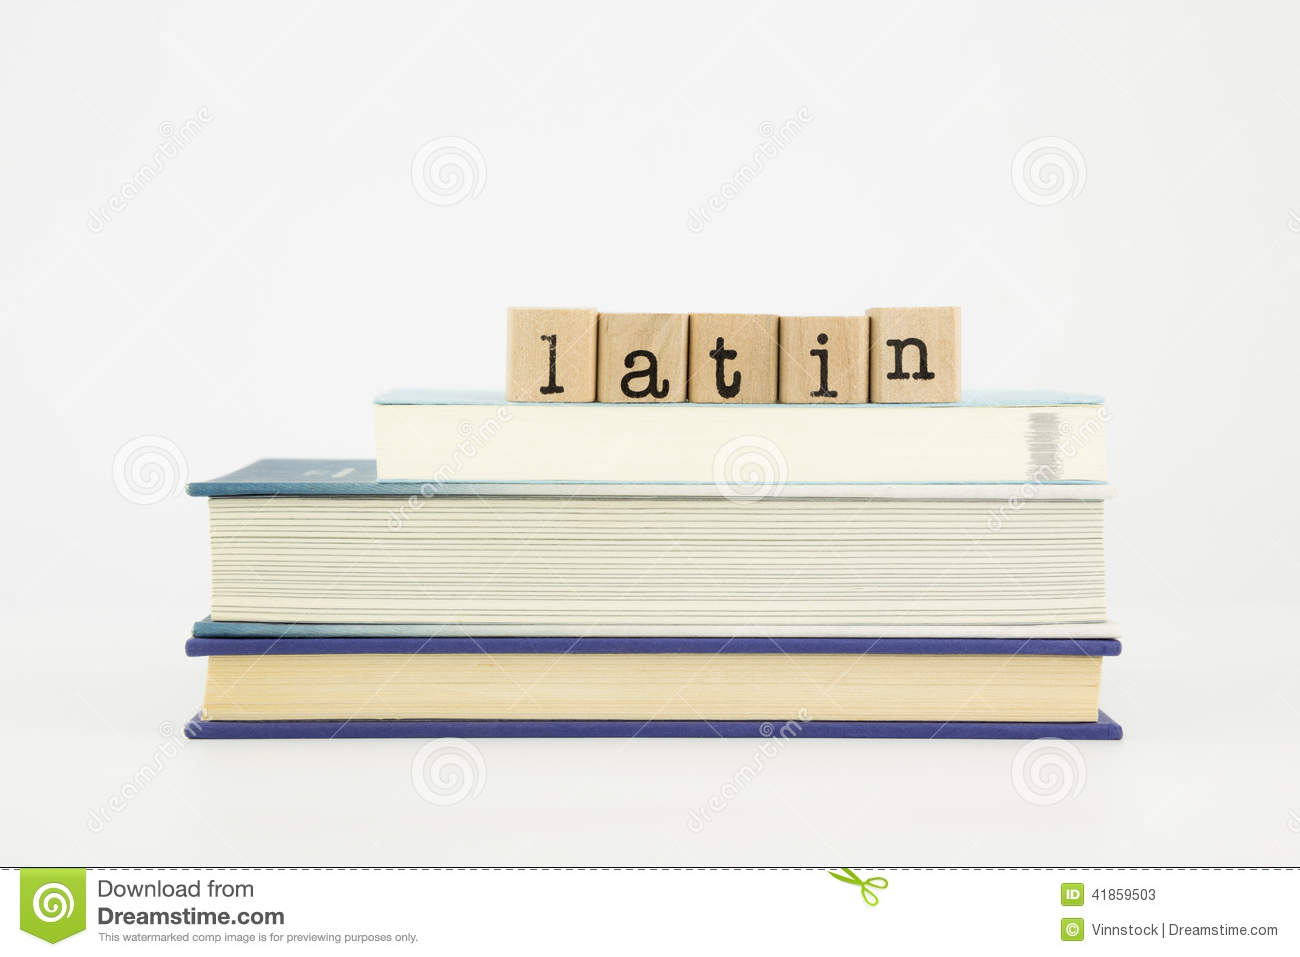 Latin word on wood stamps stack on books, language and study concept.